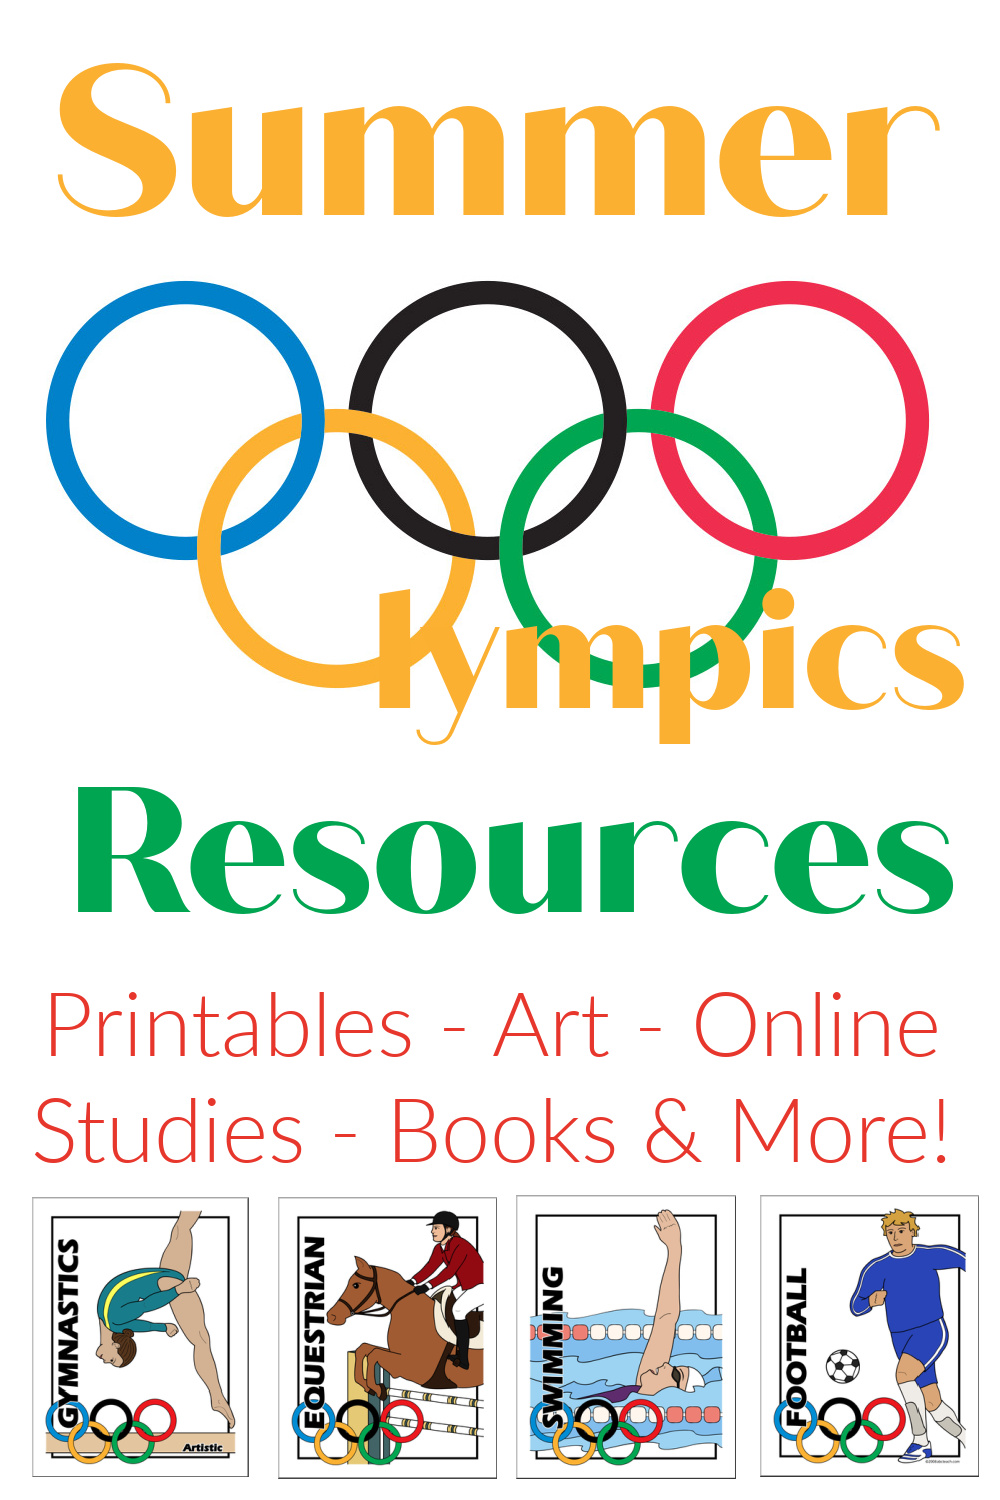 Engaging Summer Olympics Activities includes art projects, printables, books, online resources and more for learning about and engaging with the Summer Olympics. From Starts At Eight